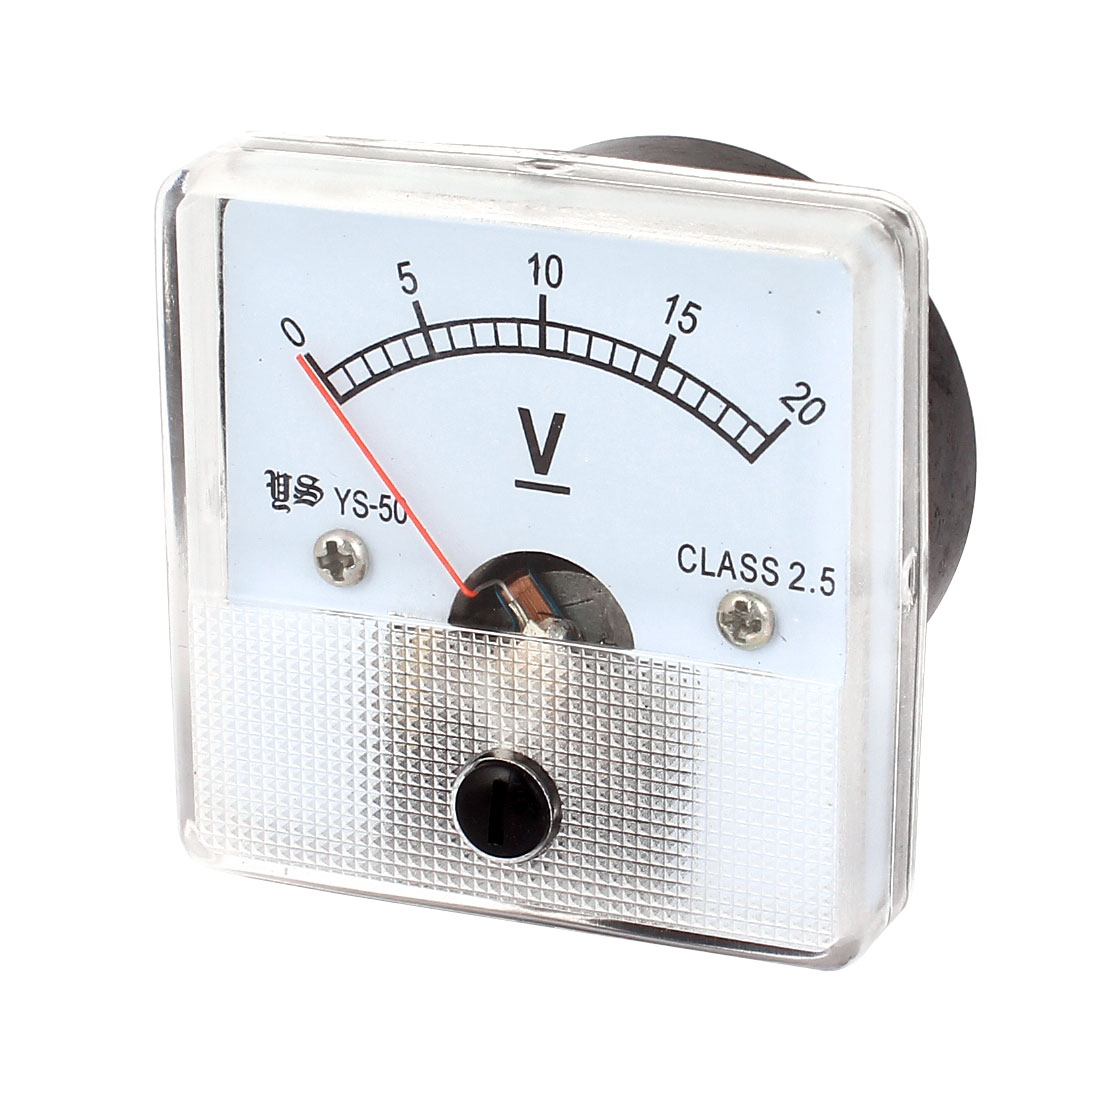 DC 0-20V Class 2.5 Accuracy Rectangle Analog Panel Volt Meter Voltmeter Gauge